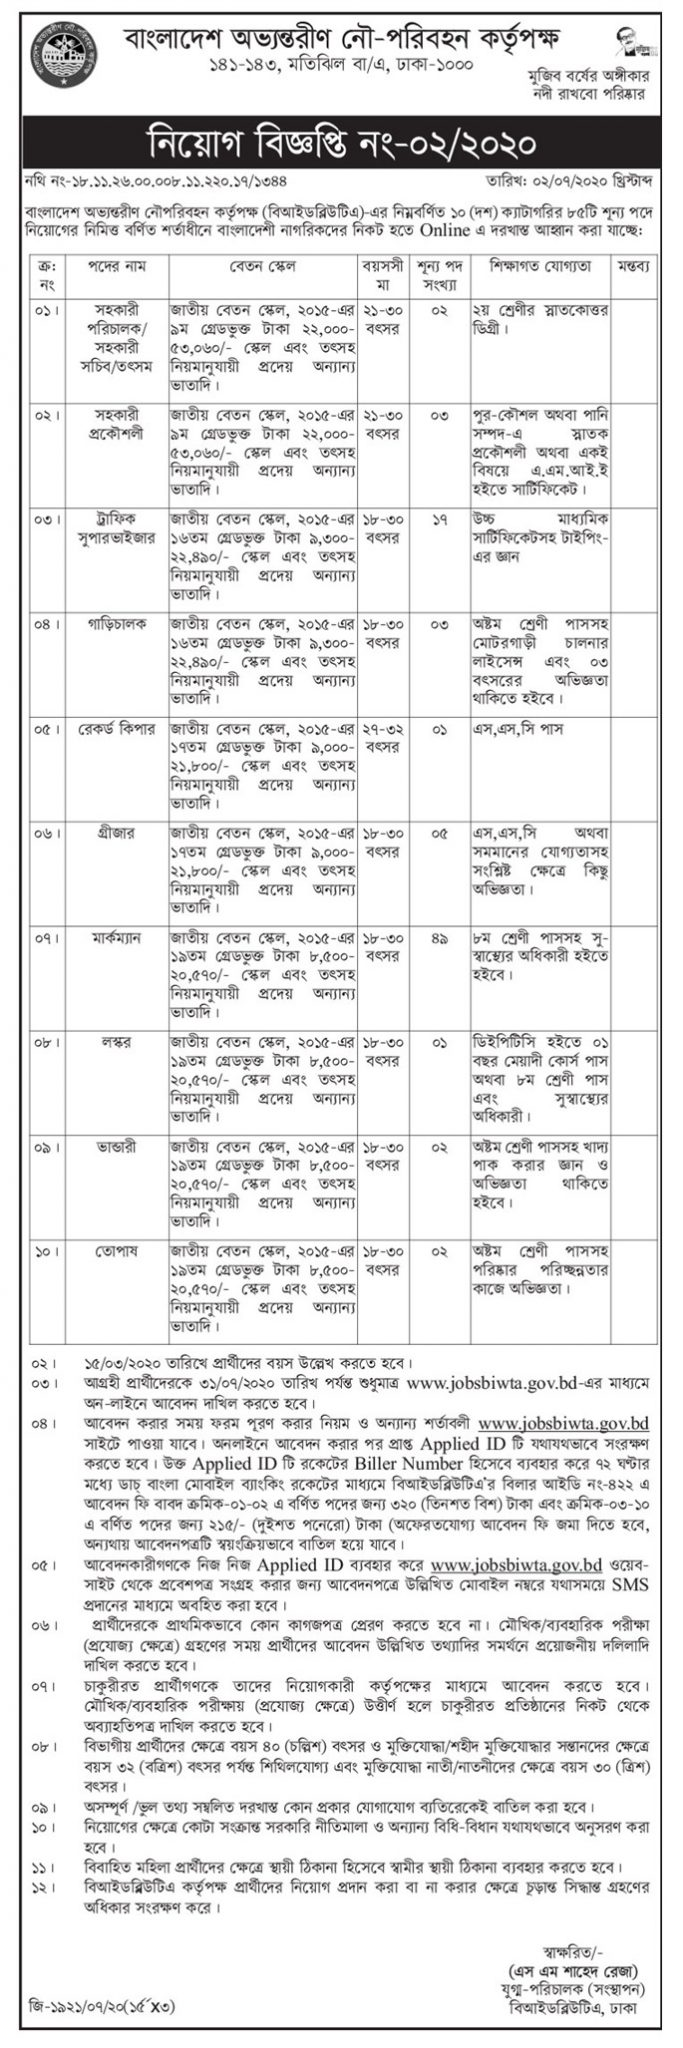 Bangladesh Inland Water Transport Corporation (BIWTC) Job Circular 2020